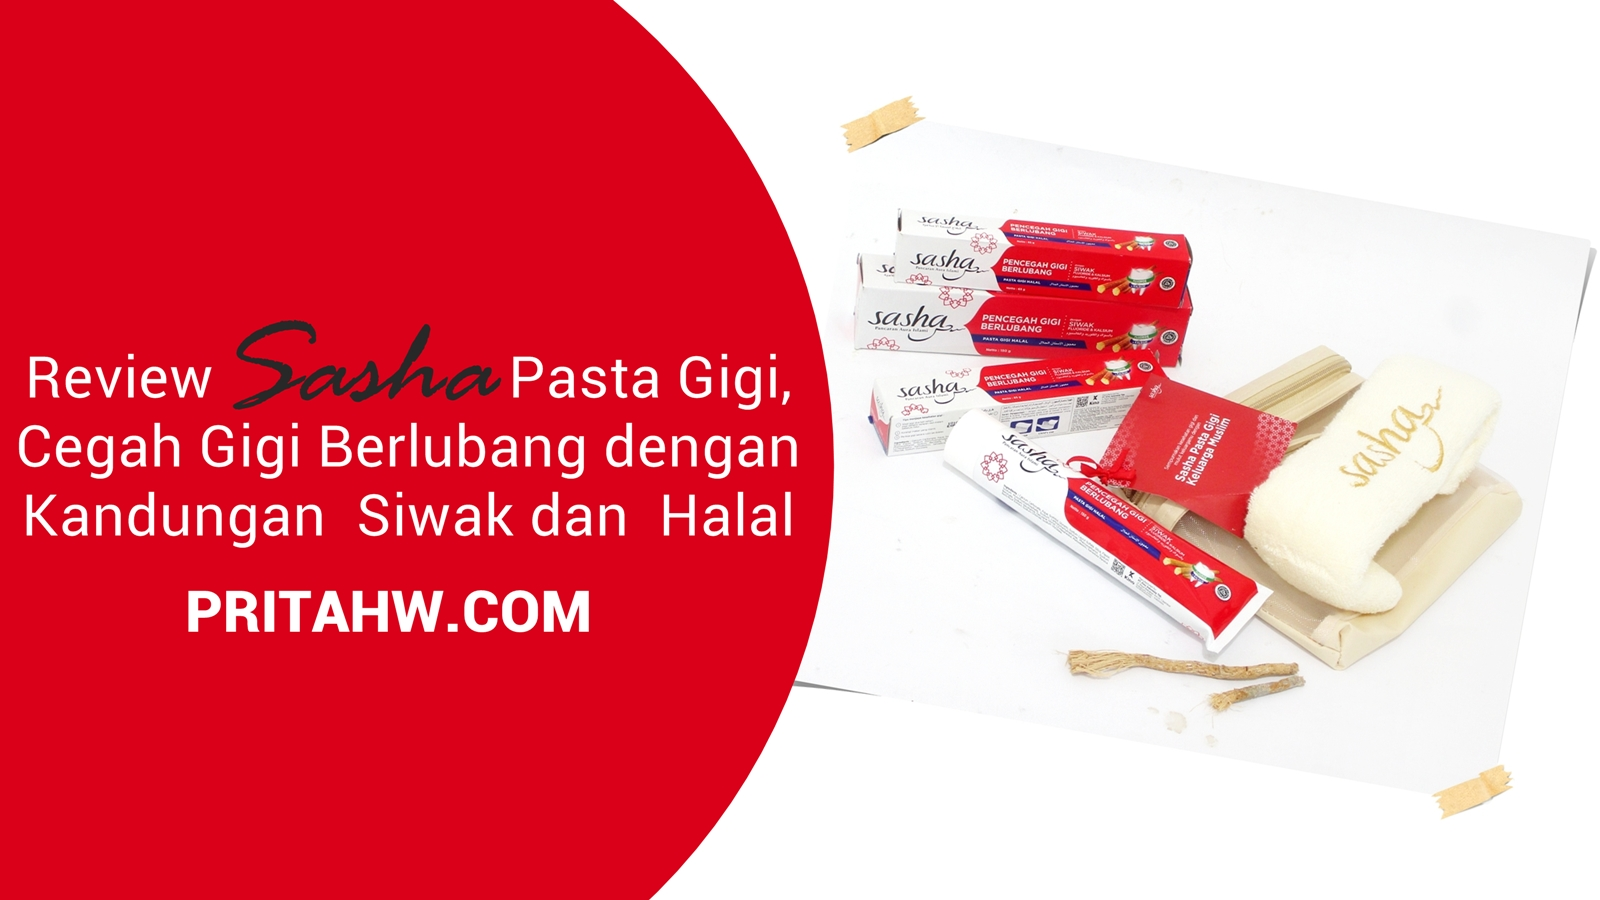 Review Sasha Pasta Gigi